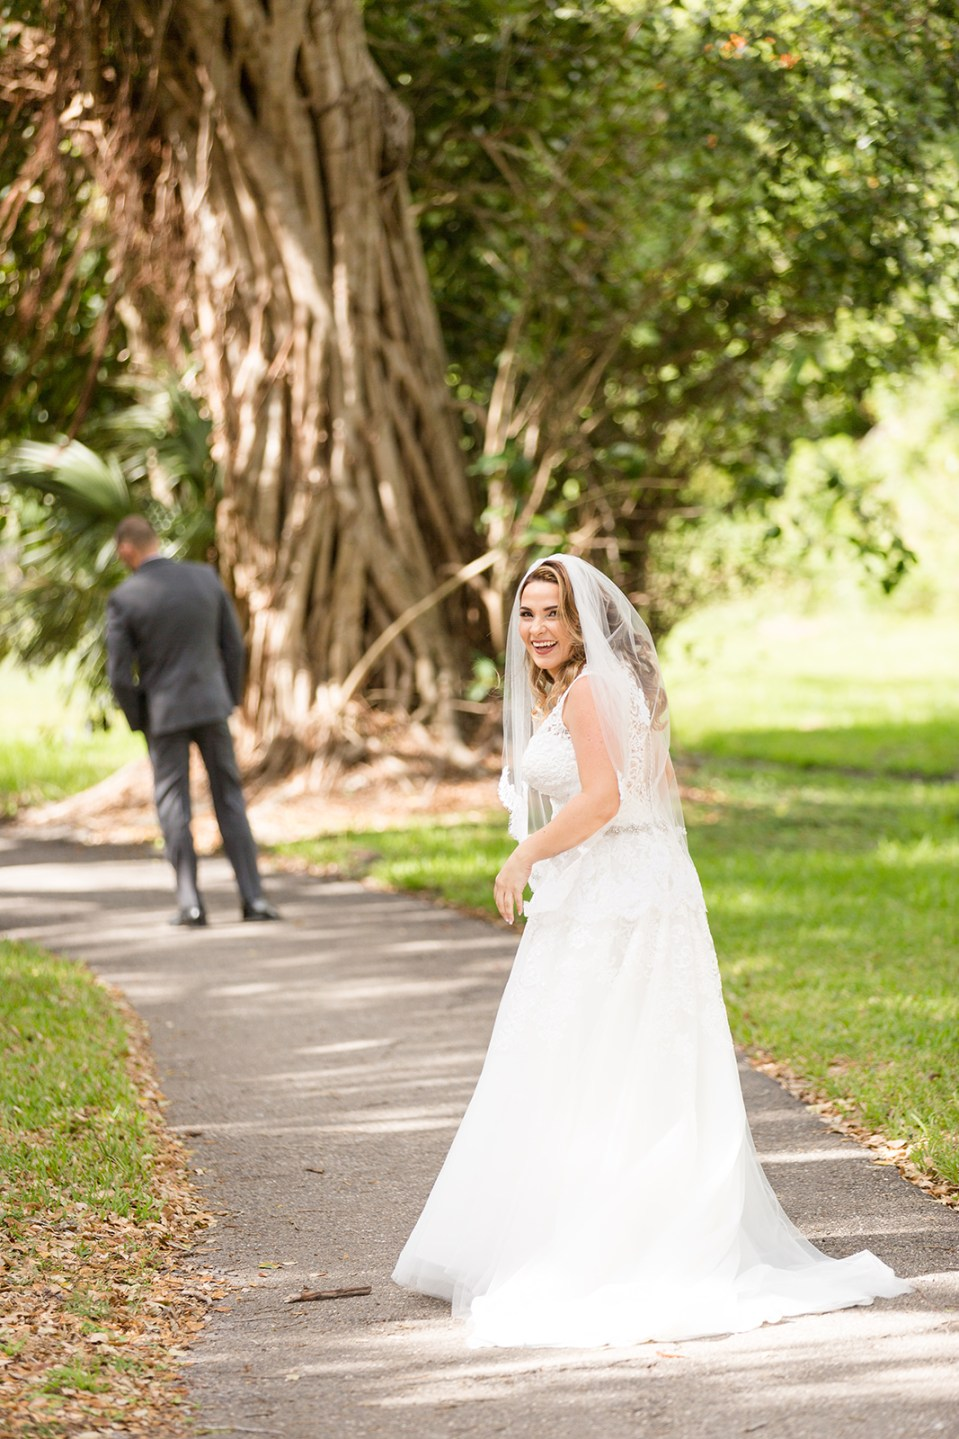 bride turned back smiling before the first look